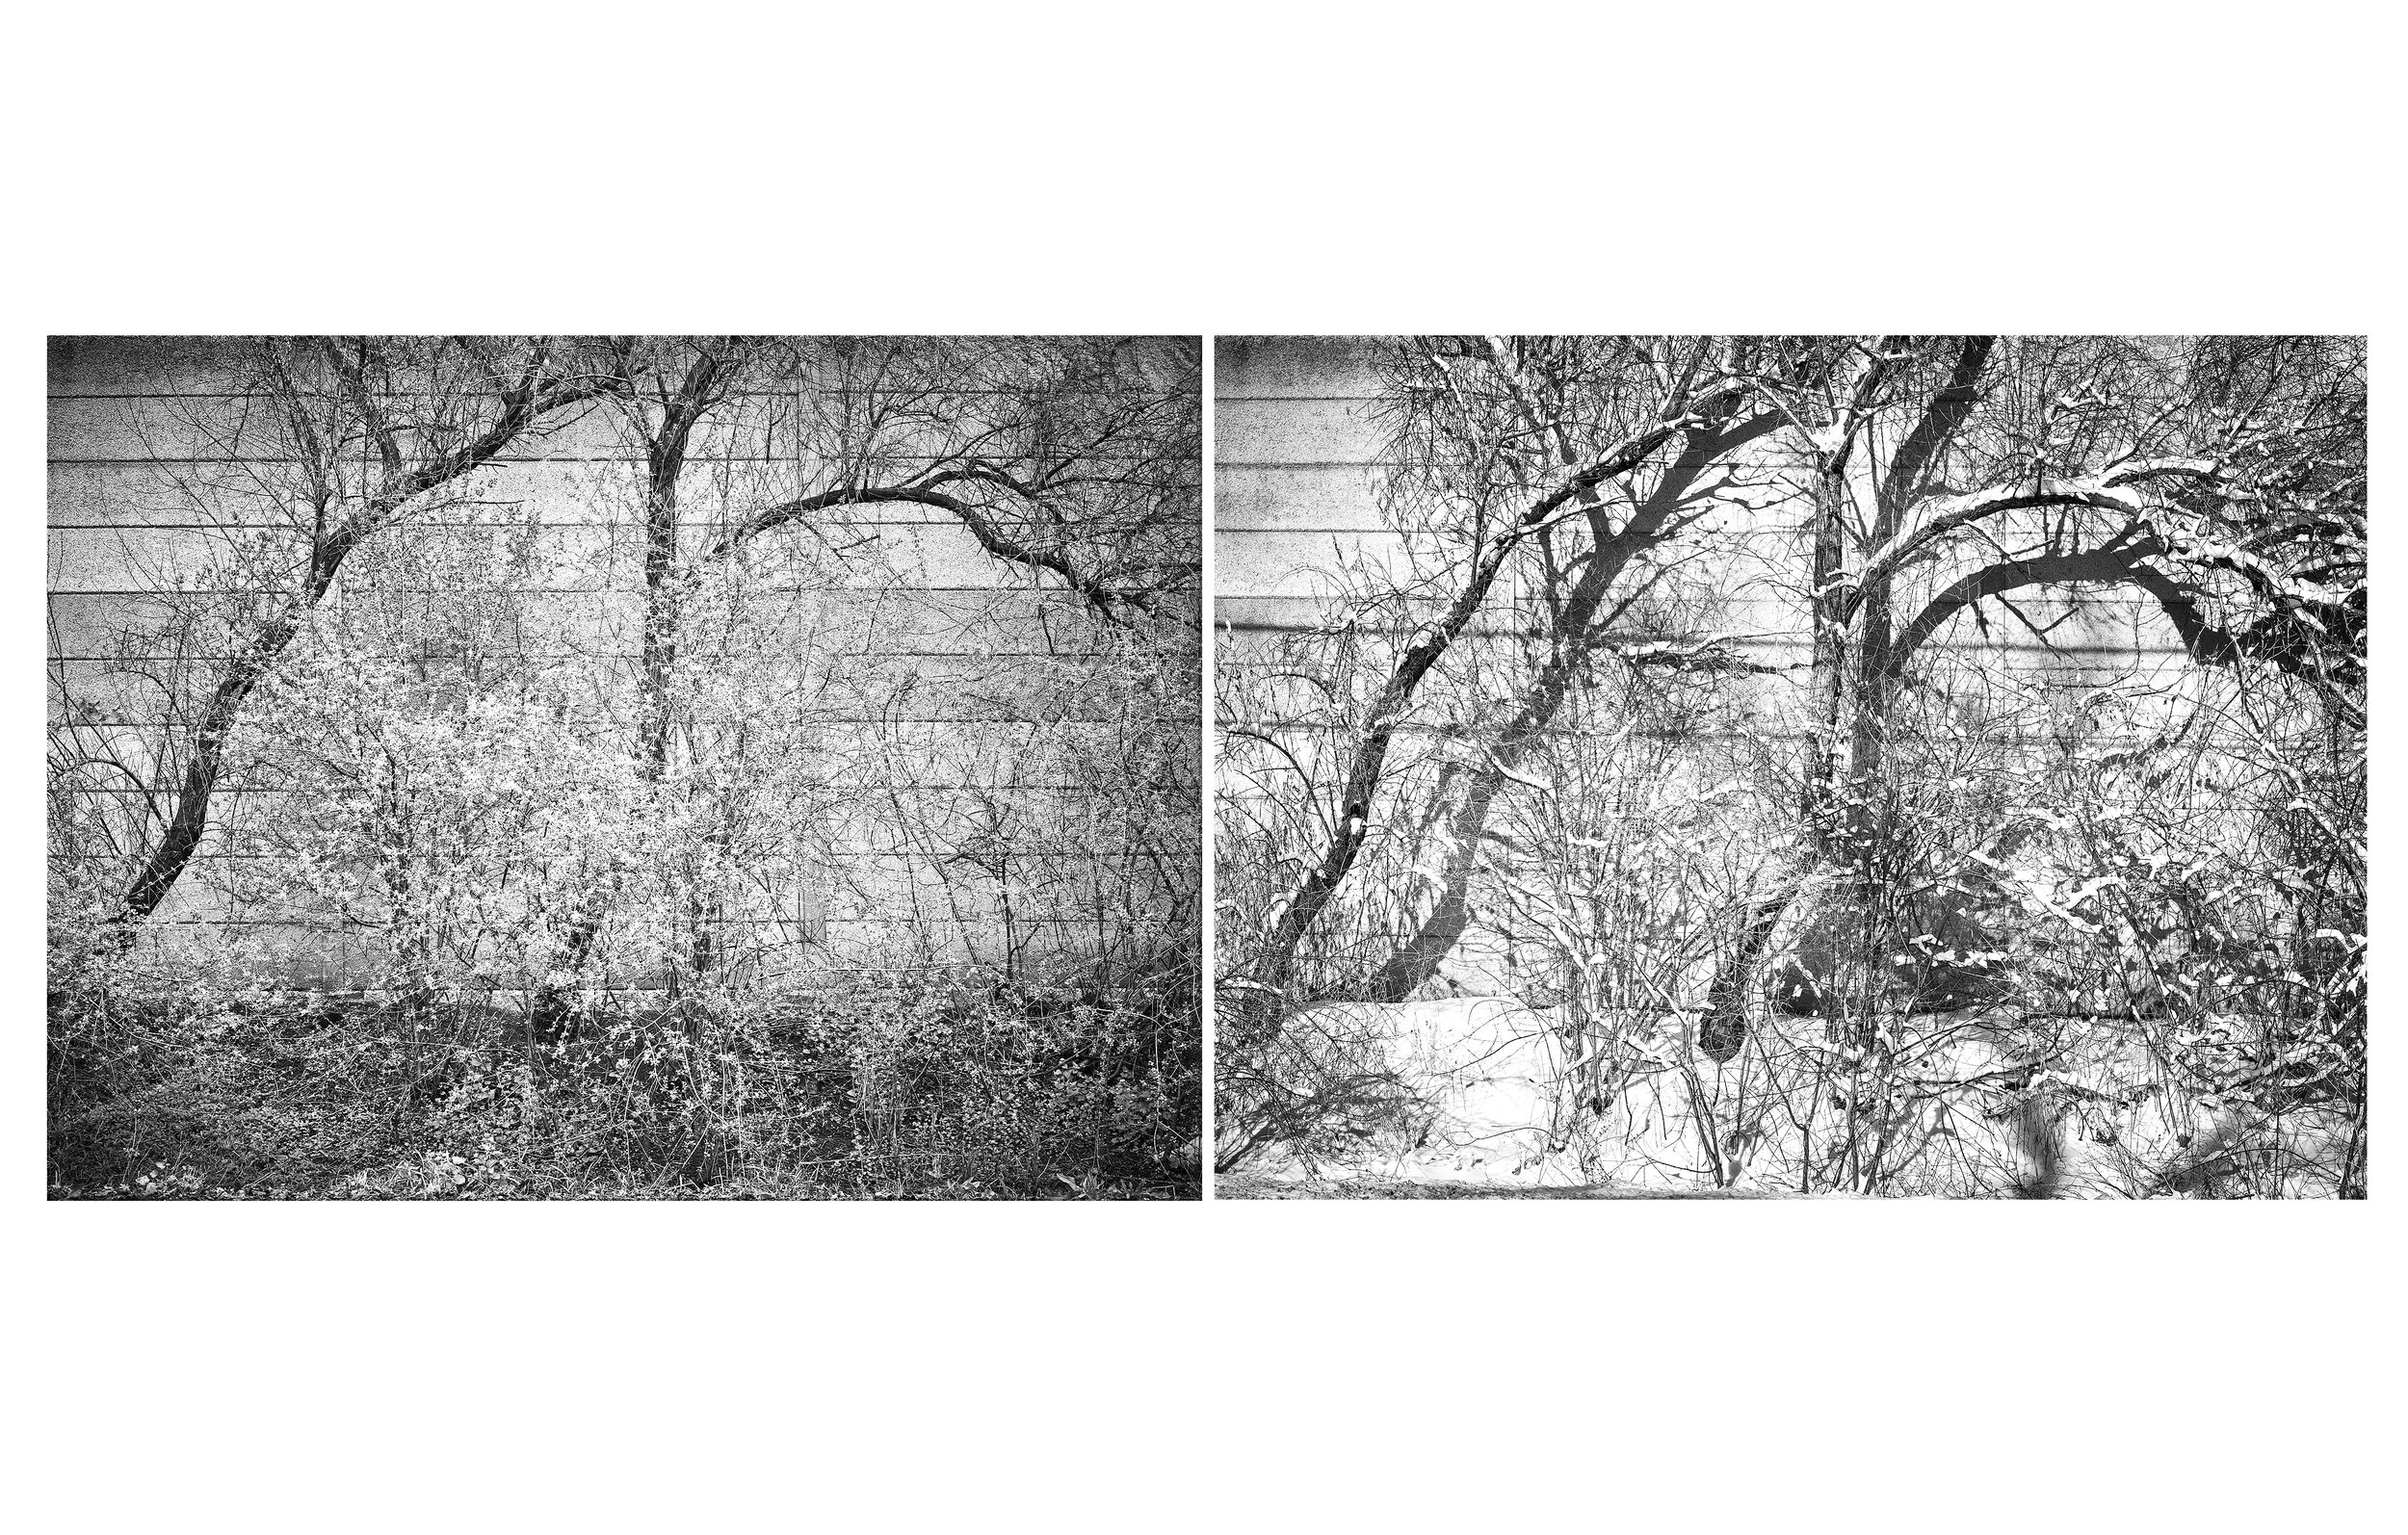 Mississauga Shrubs Spring-Winter Diptych 2016